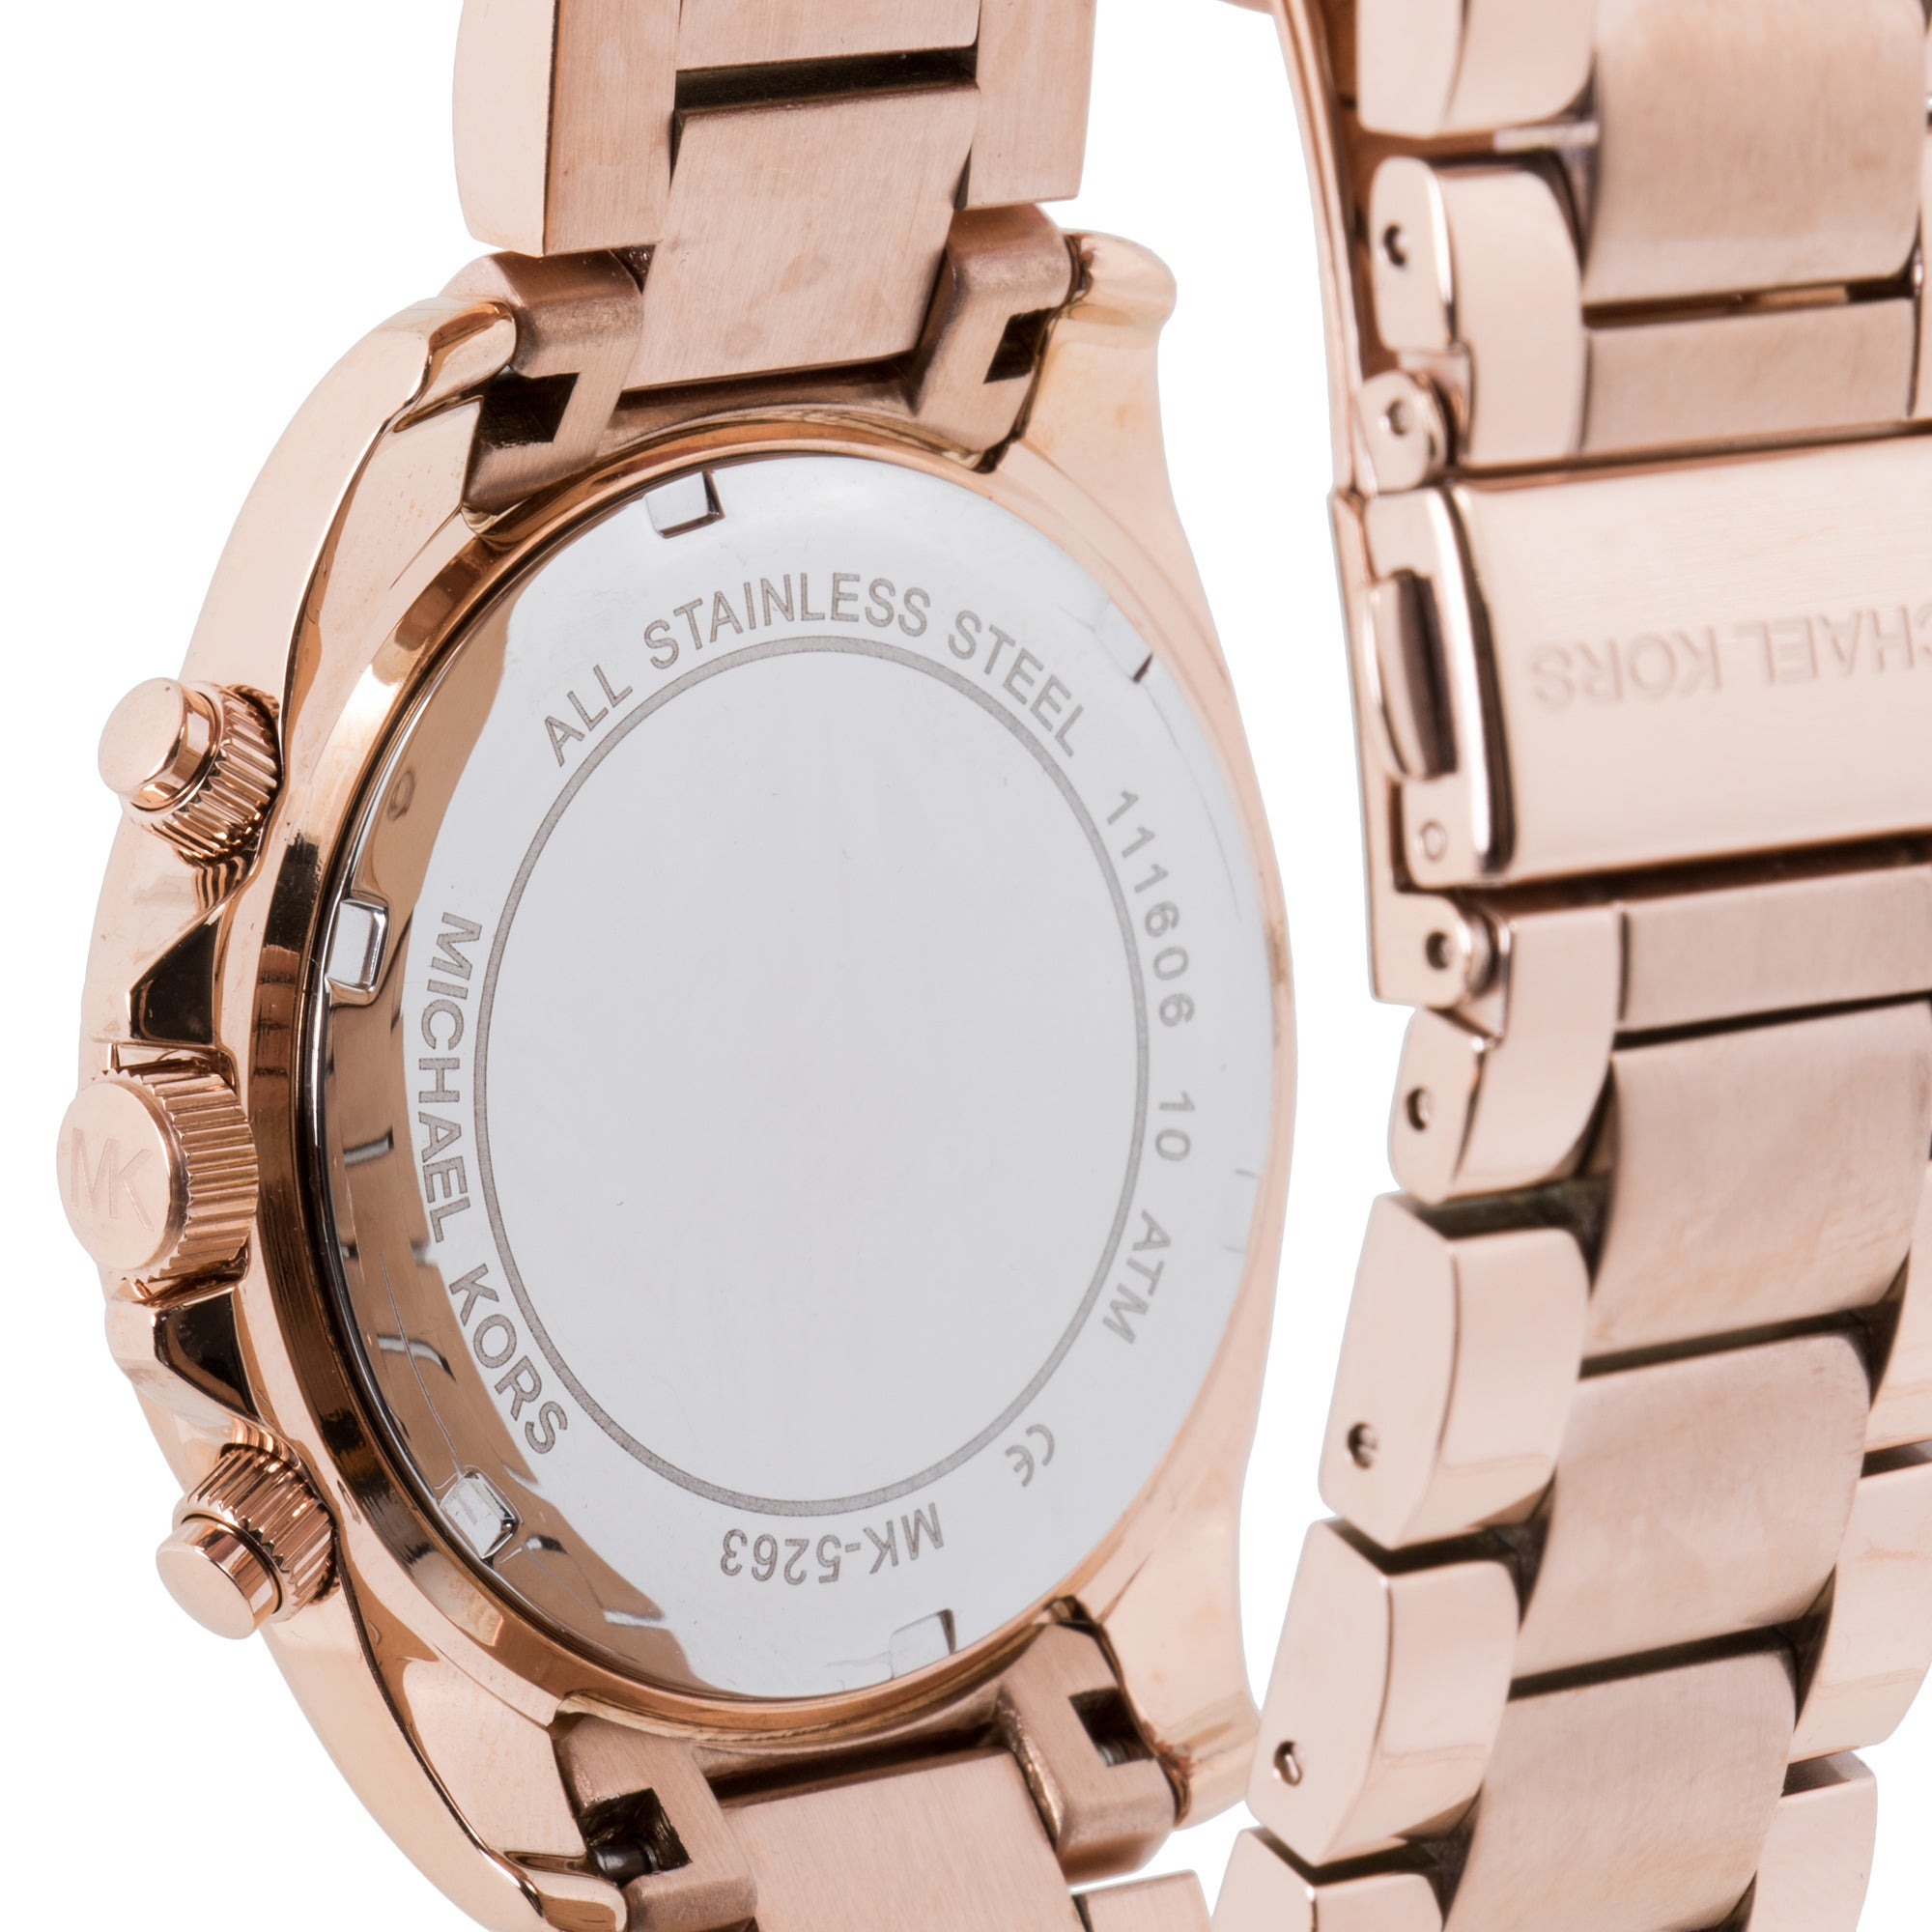 2ab306a84 Shop Michael Kors Women's MK5263 'Blair' Rose Gold-Tone Chronograph Watch -  Free Shipping Today - Overstock - 5336896